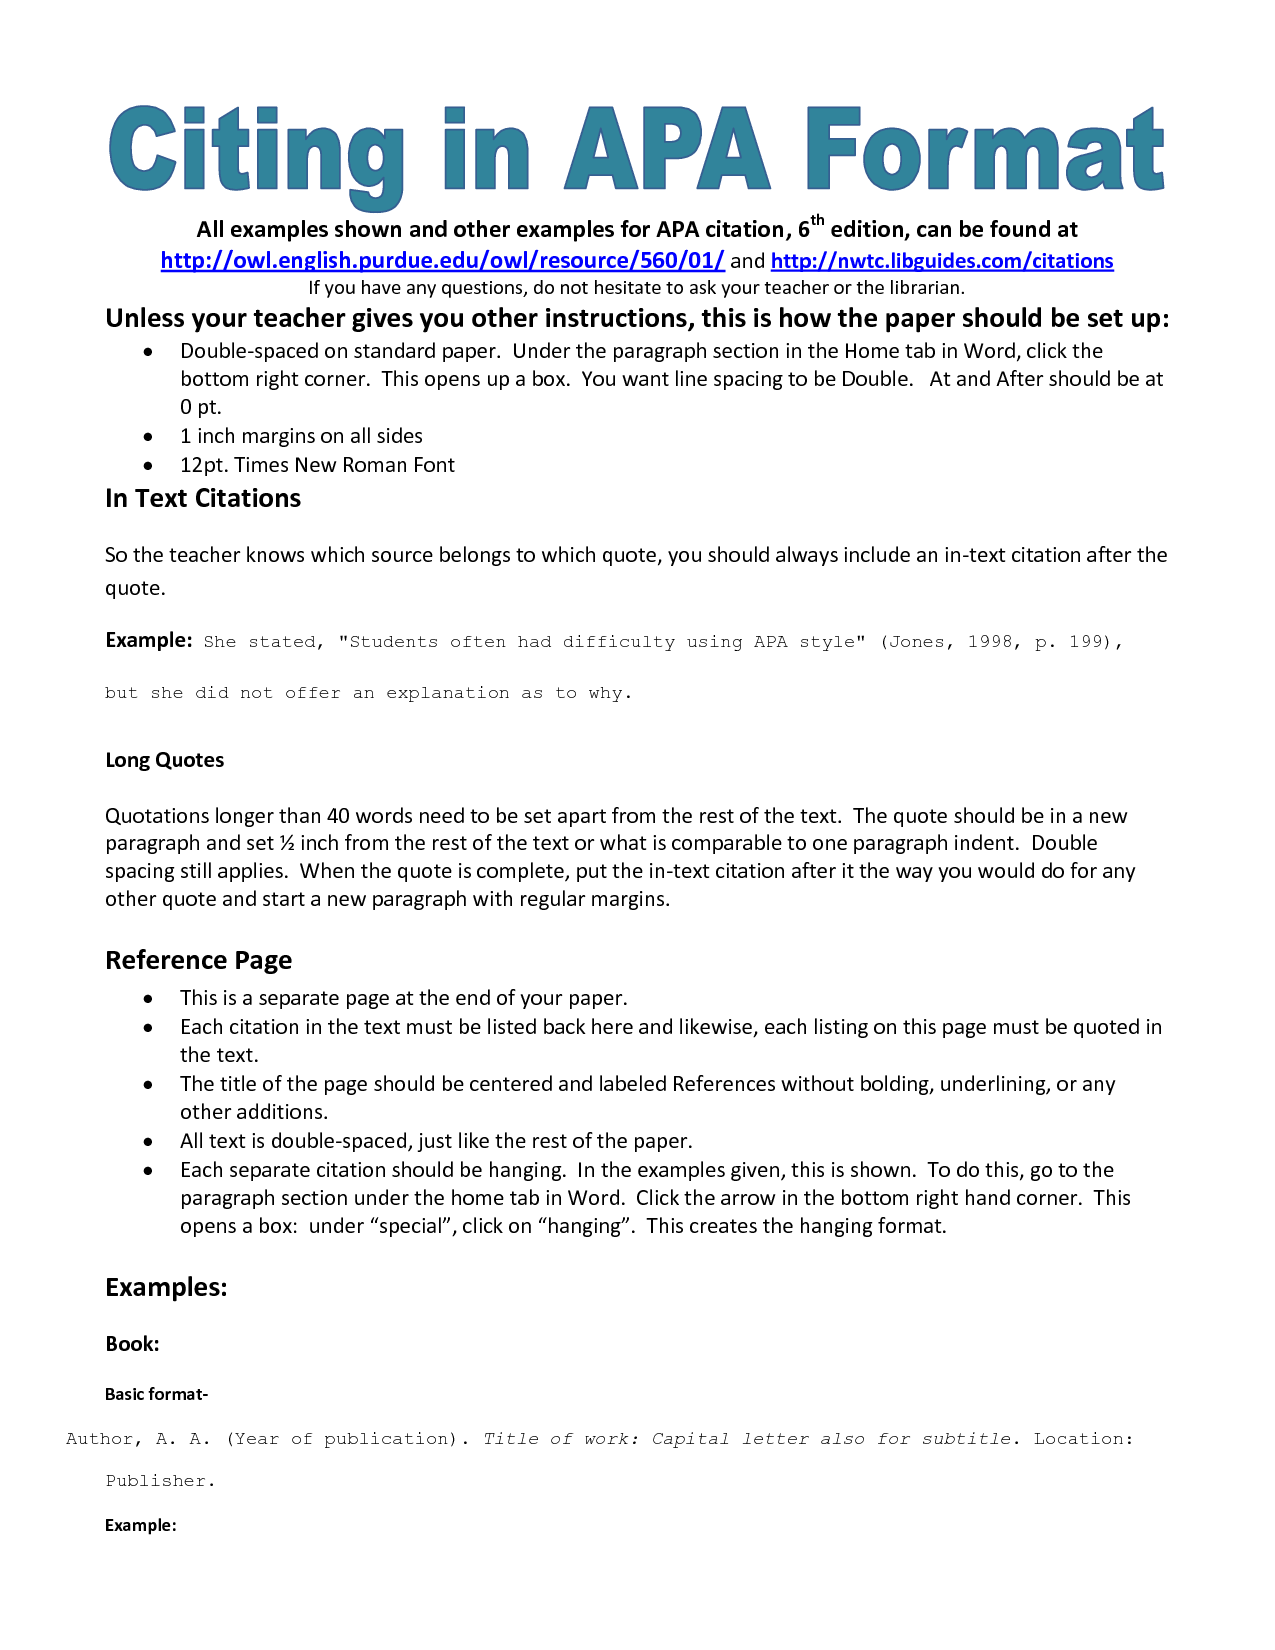 APA style research paper writing - Essay Writing Services